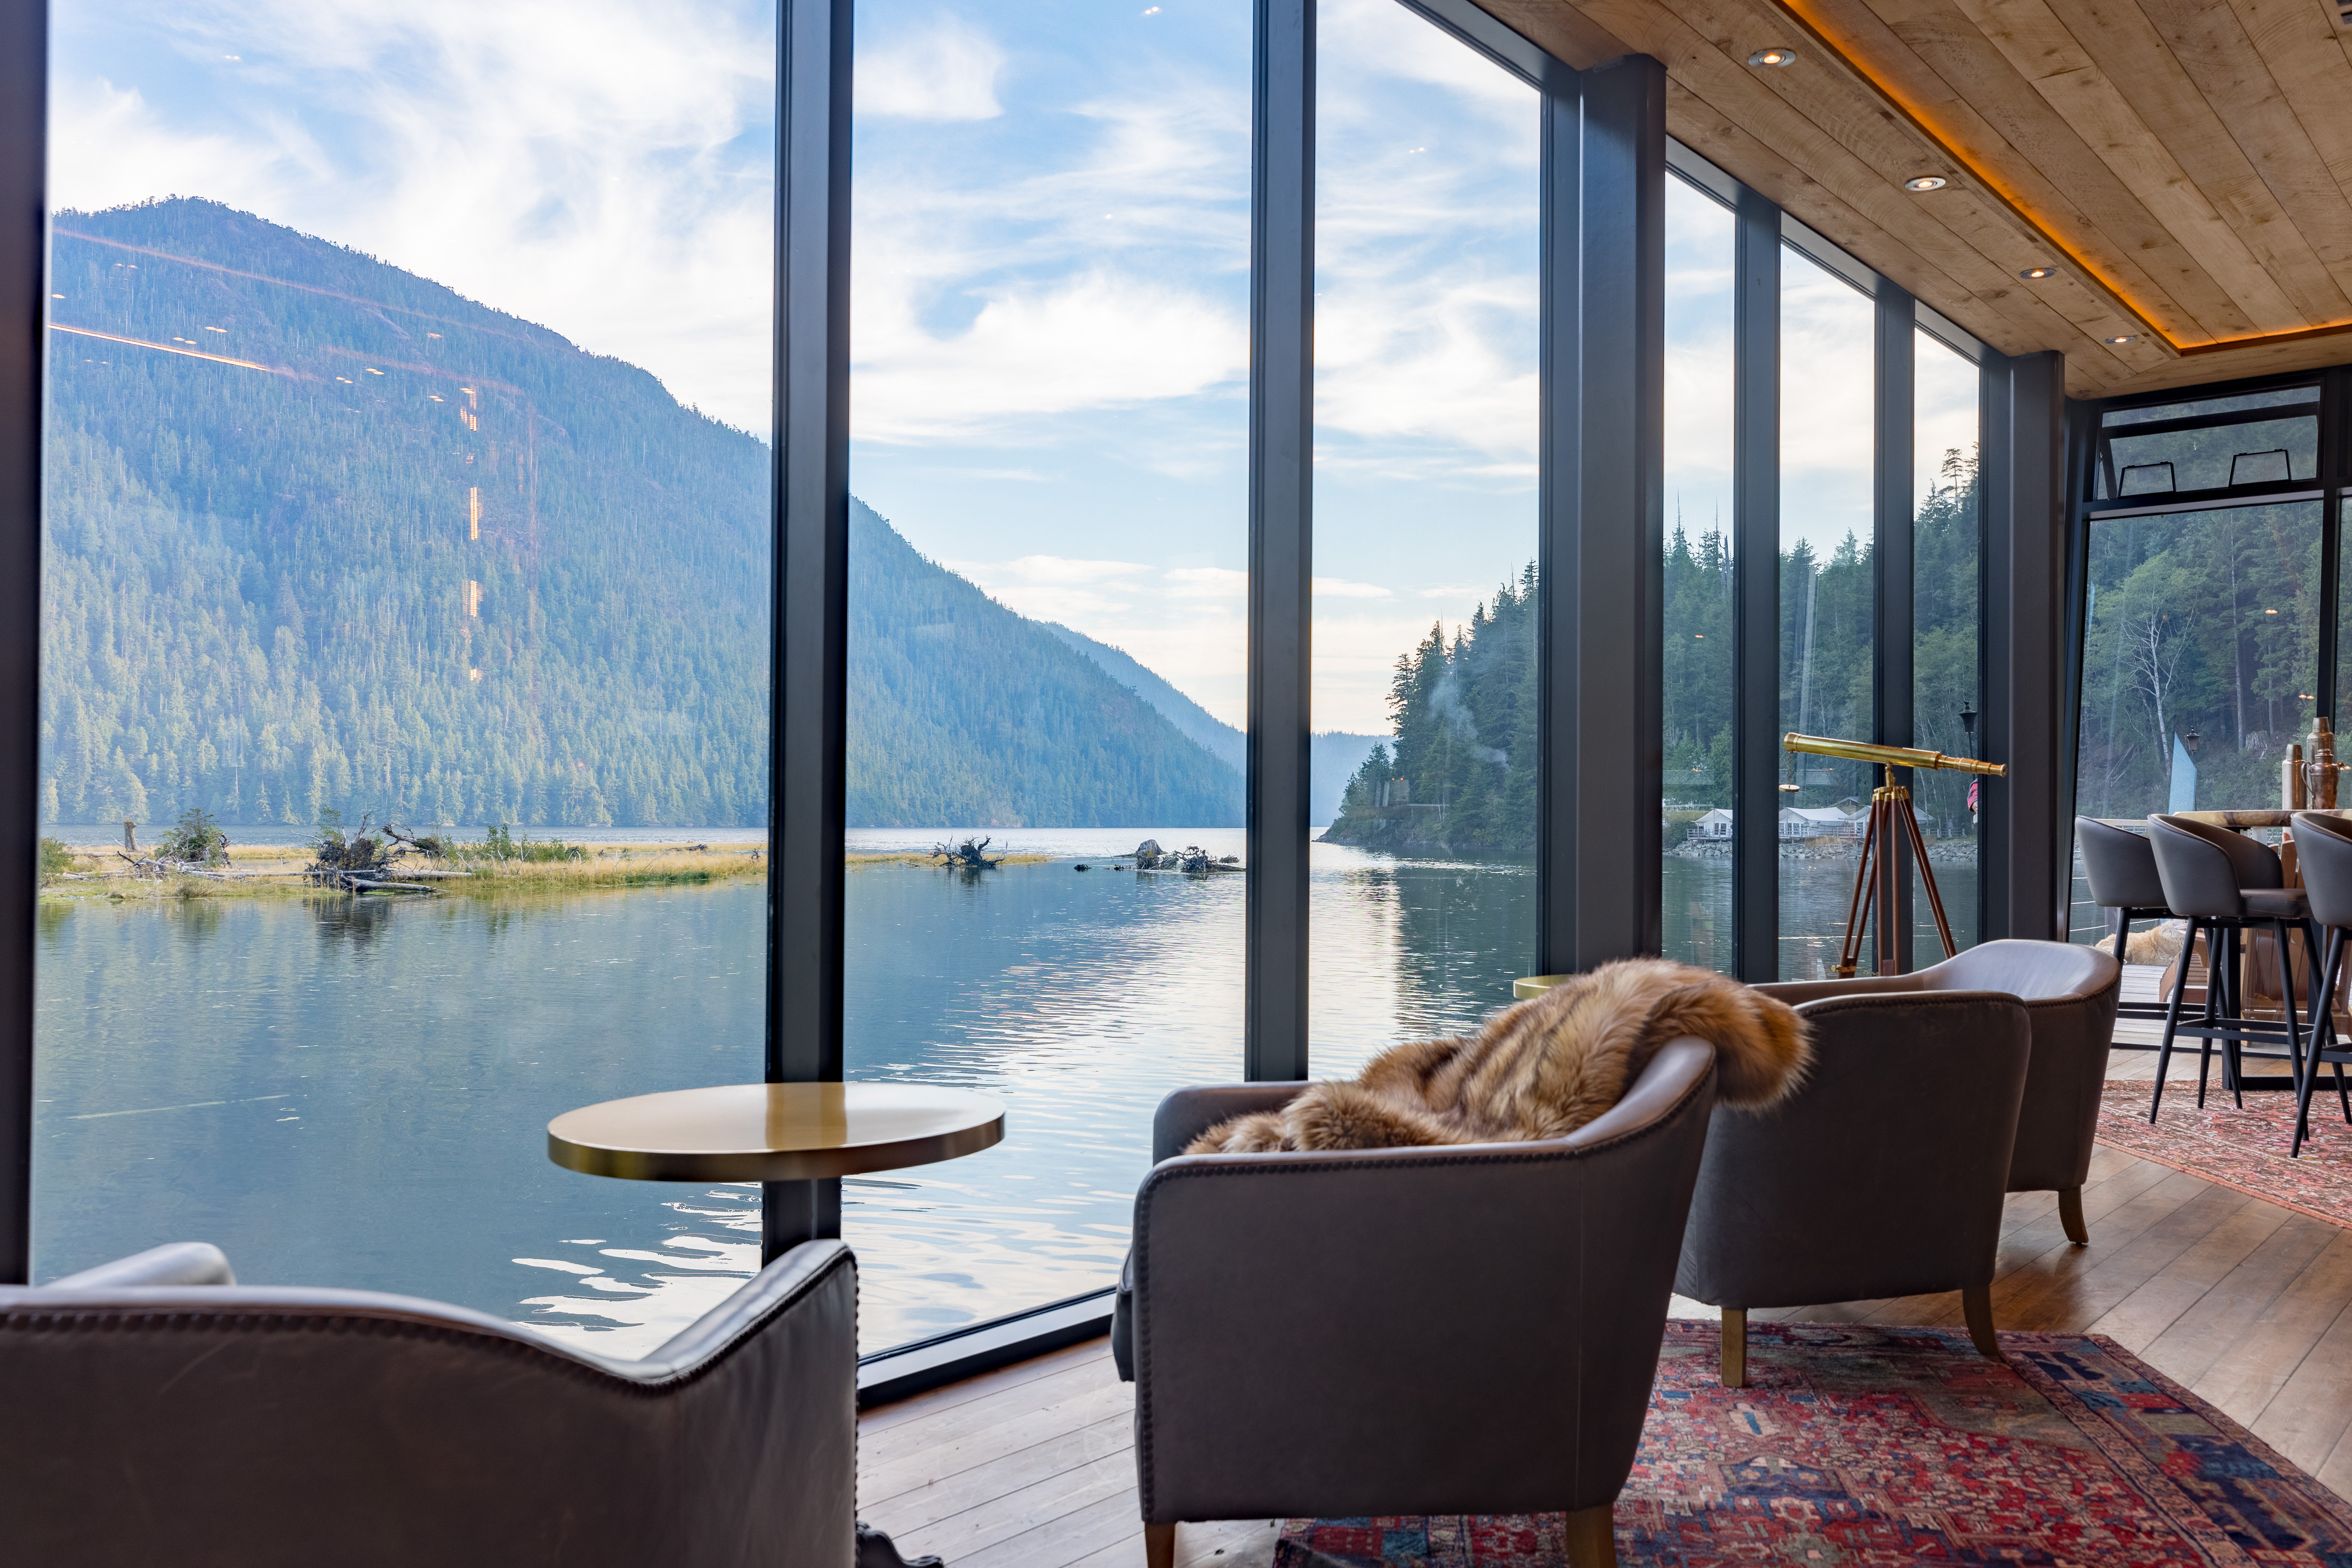 Clayoquot Wilderness Resort by Tom Cahalan